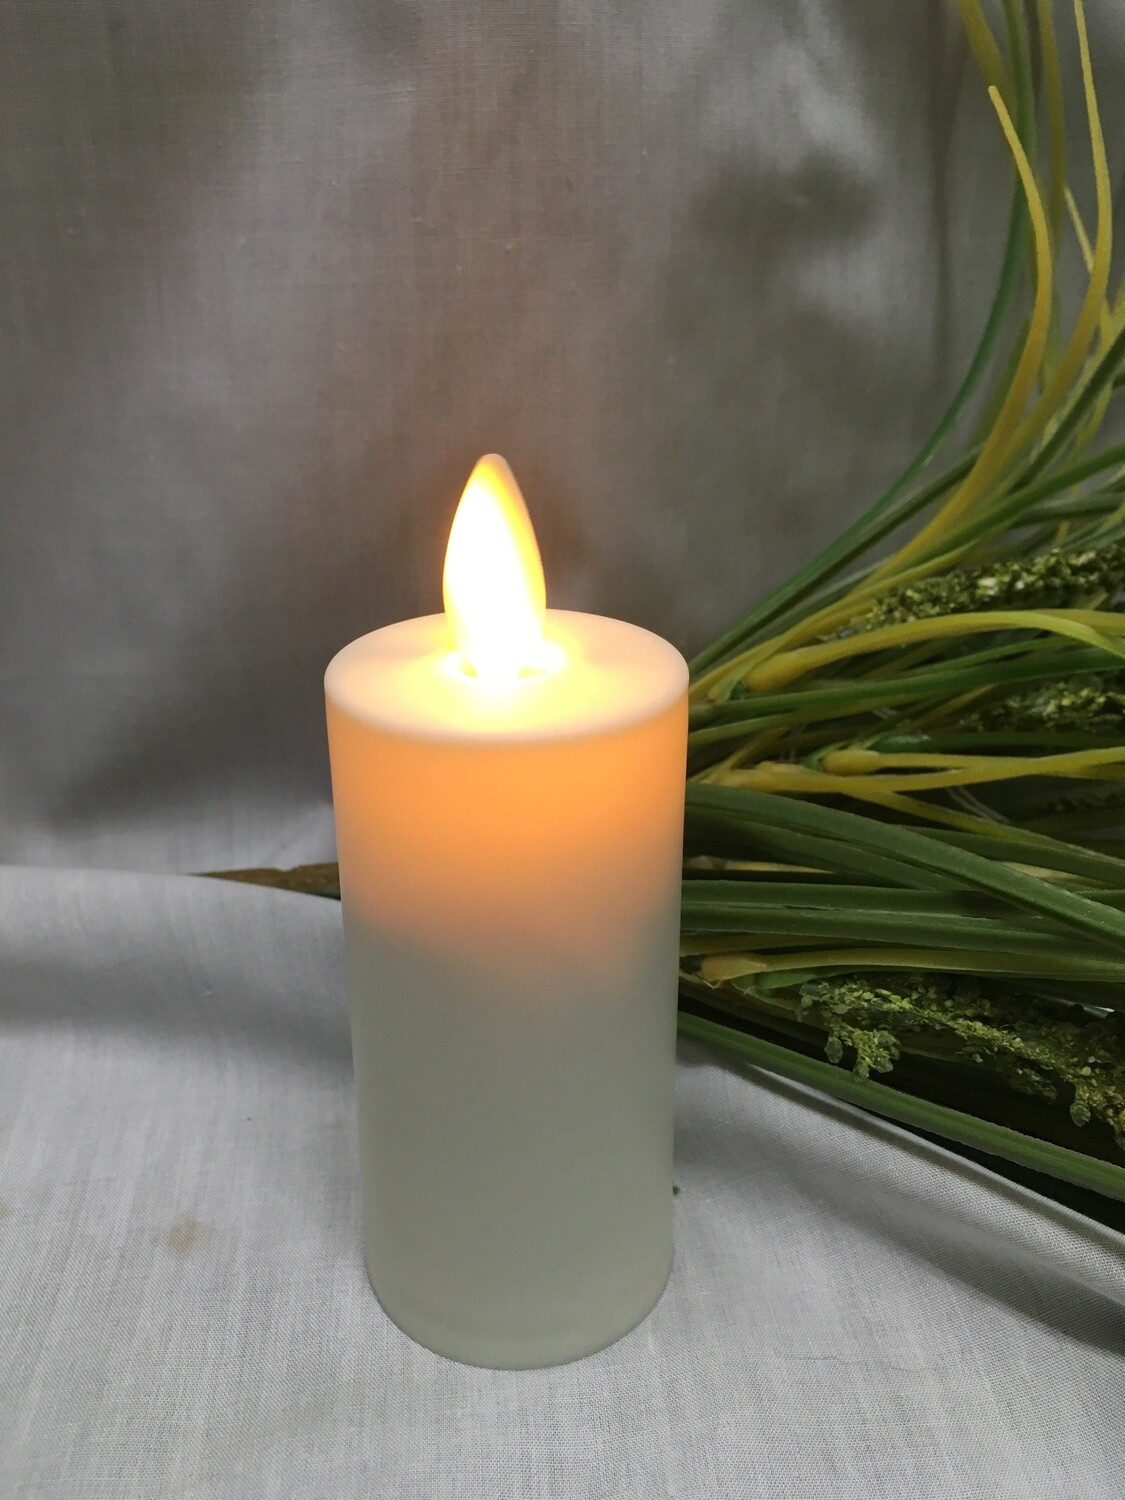 Ivory - Reallite Flameless Votive Candle with Timer - 1.5x3 inches - moving flame